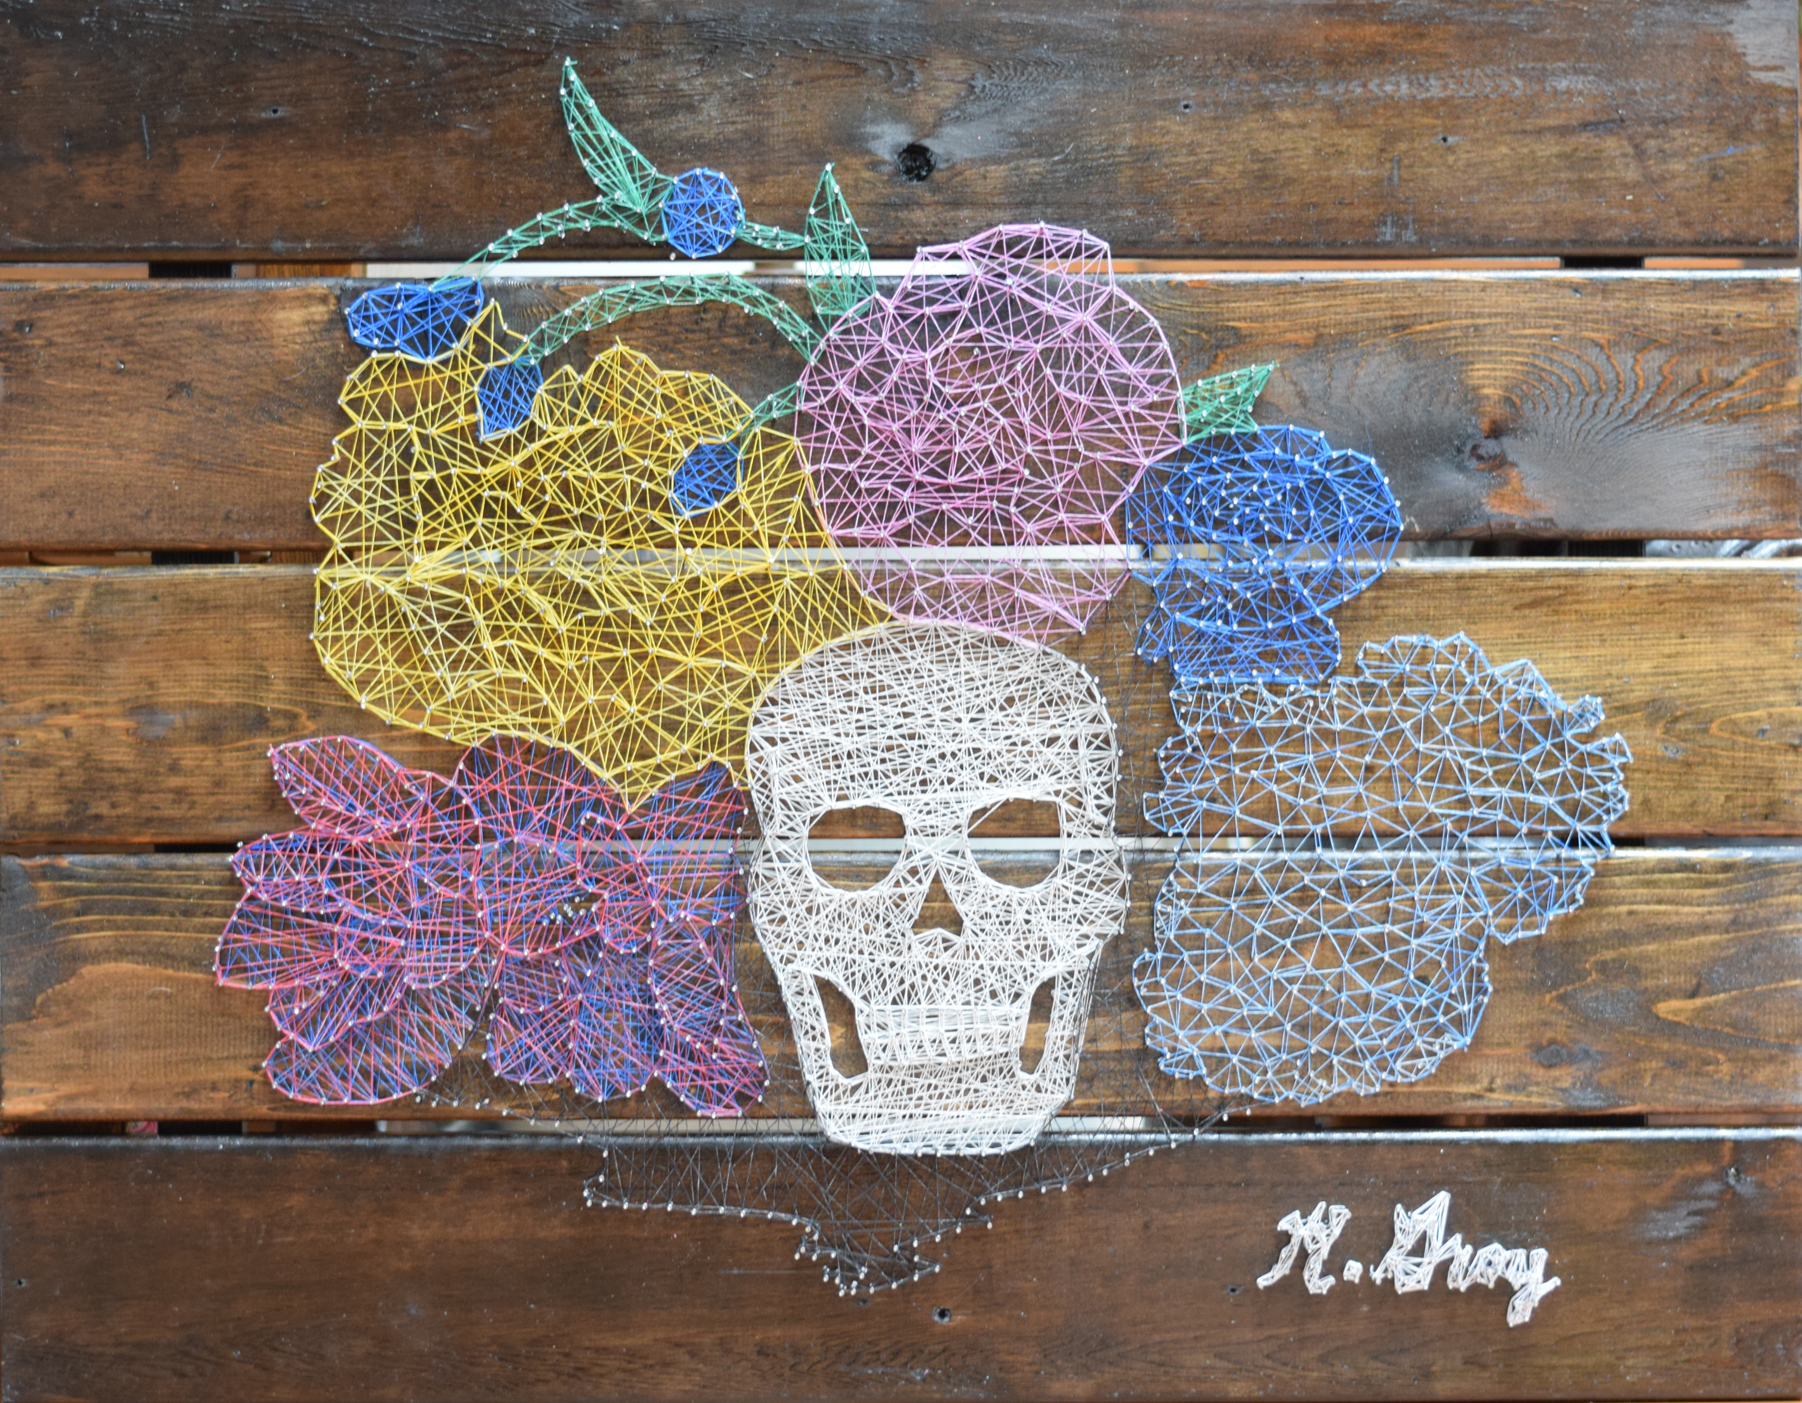 String dyed with pastel, and nails on wood 28 in. x 36 in.